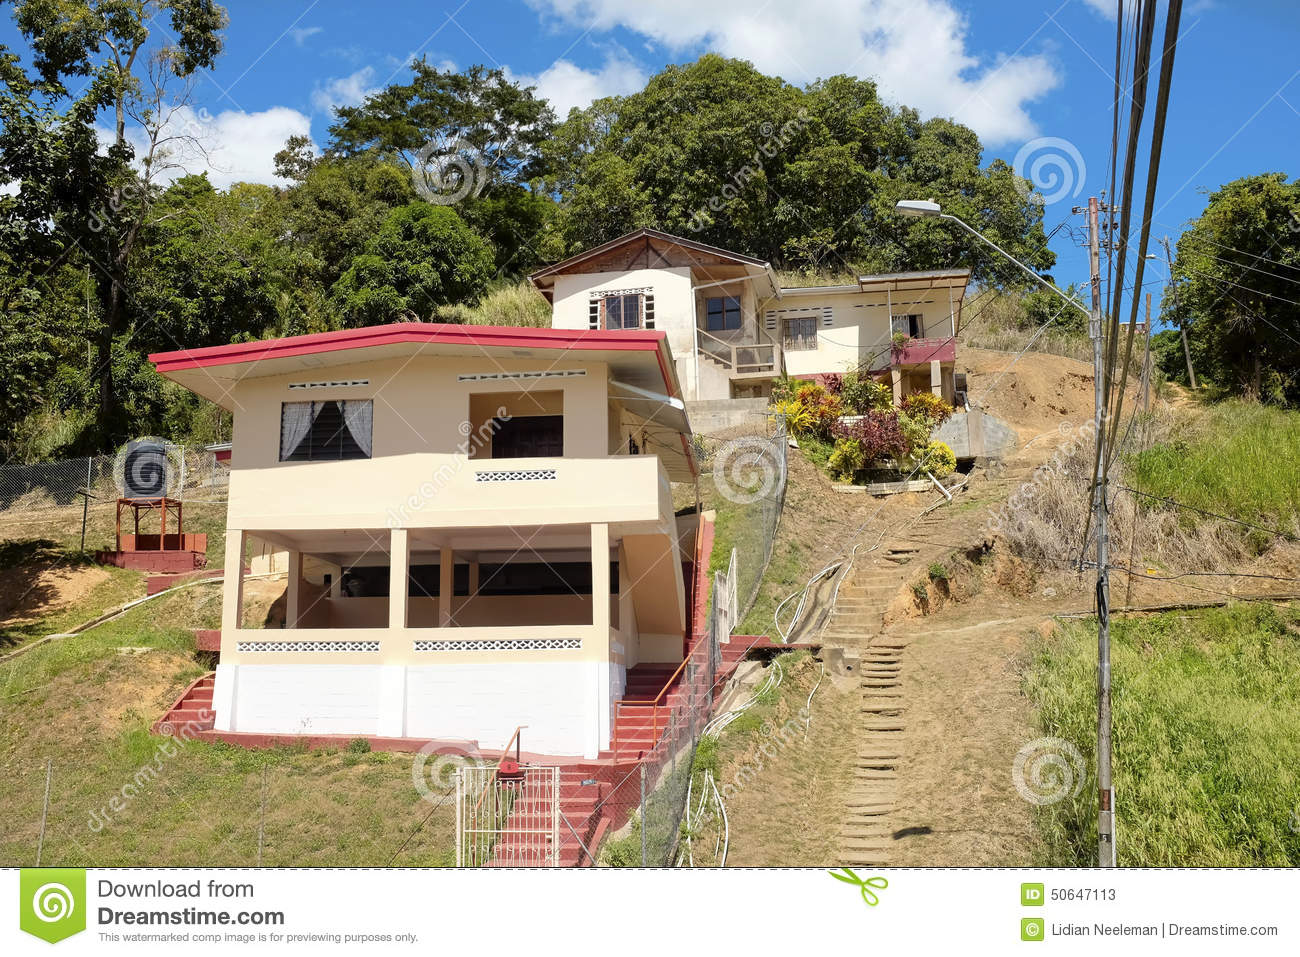 Port of spain in trinidad and tobago stock image image for Trini homes